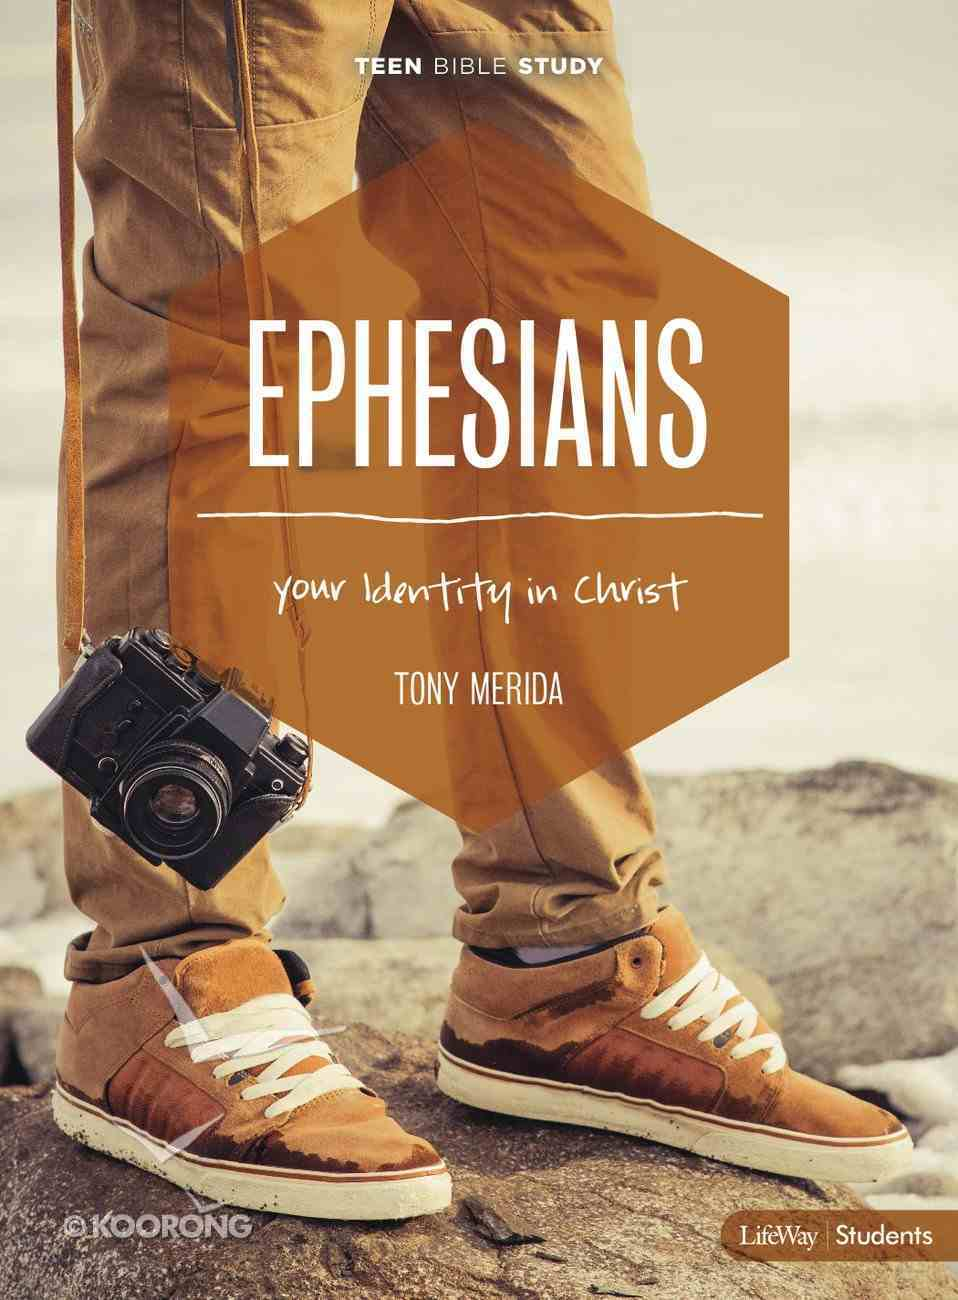 Ephesians: Your Identity in Christ (Teen Bible Study) Paperback